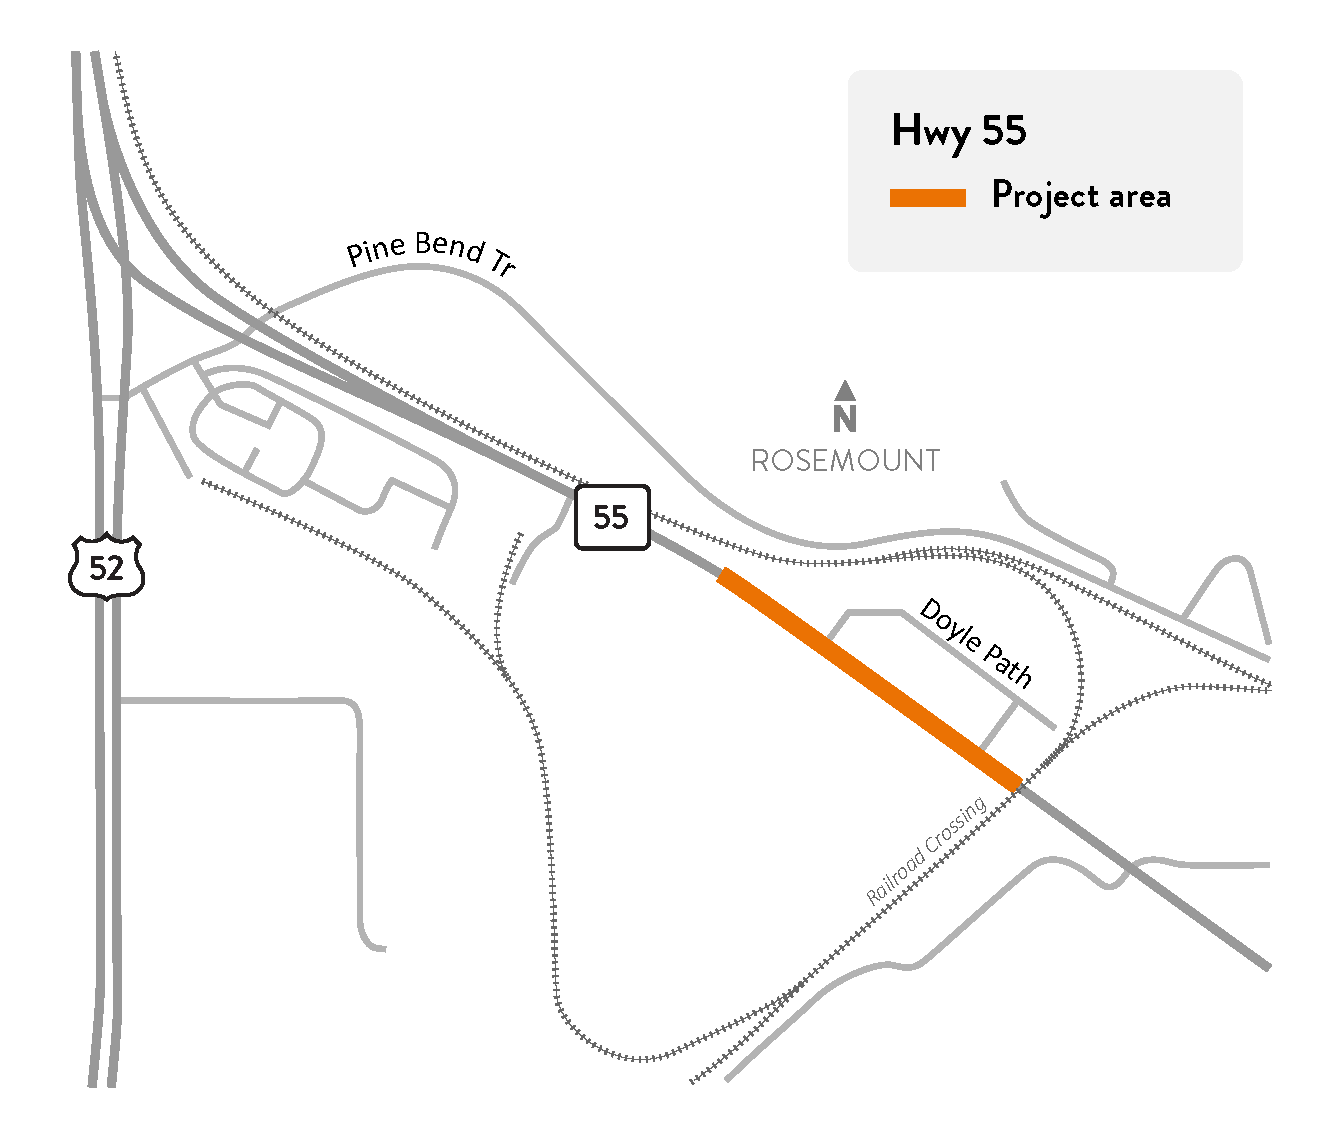 Highway 55 in Rosemount project location map